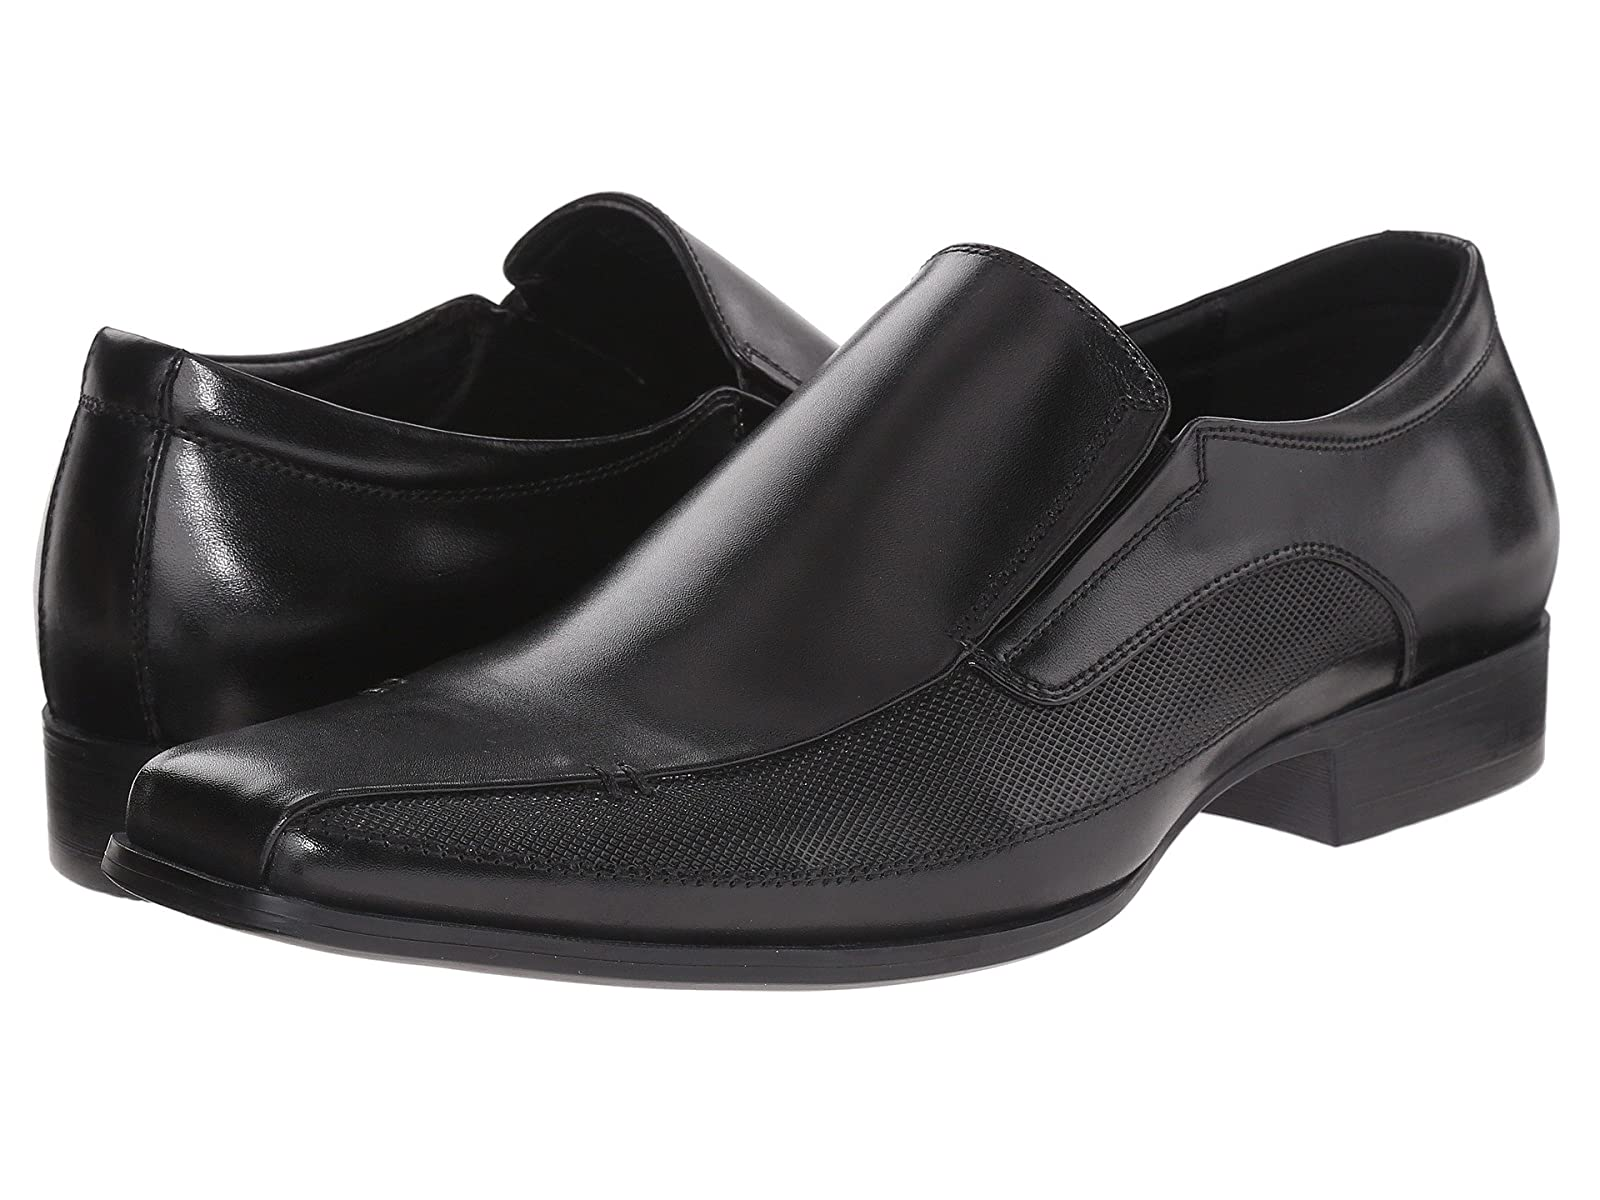 Kenneth Cole Reaction Rave ReviewCheap and distinctive eye-catching shoes